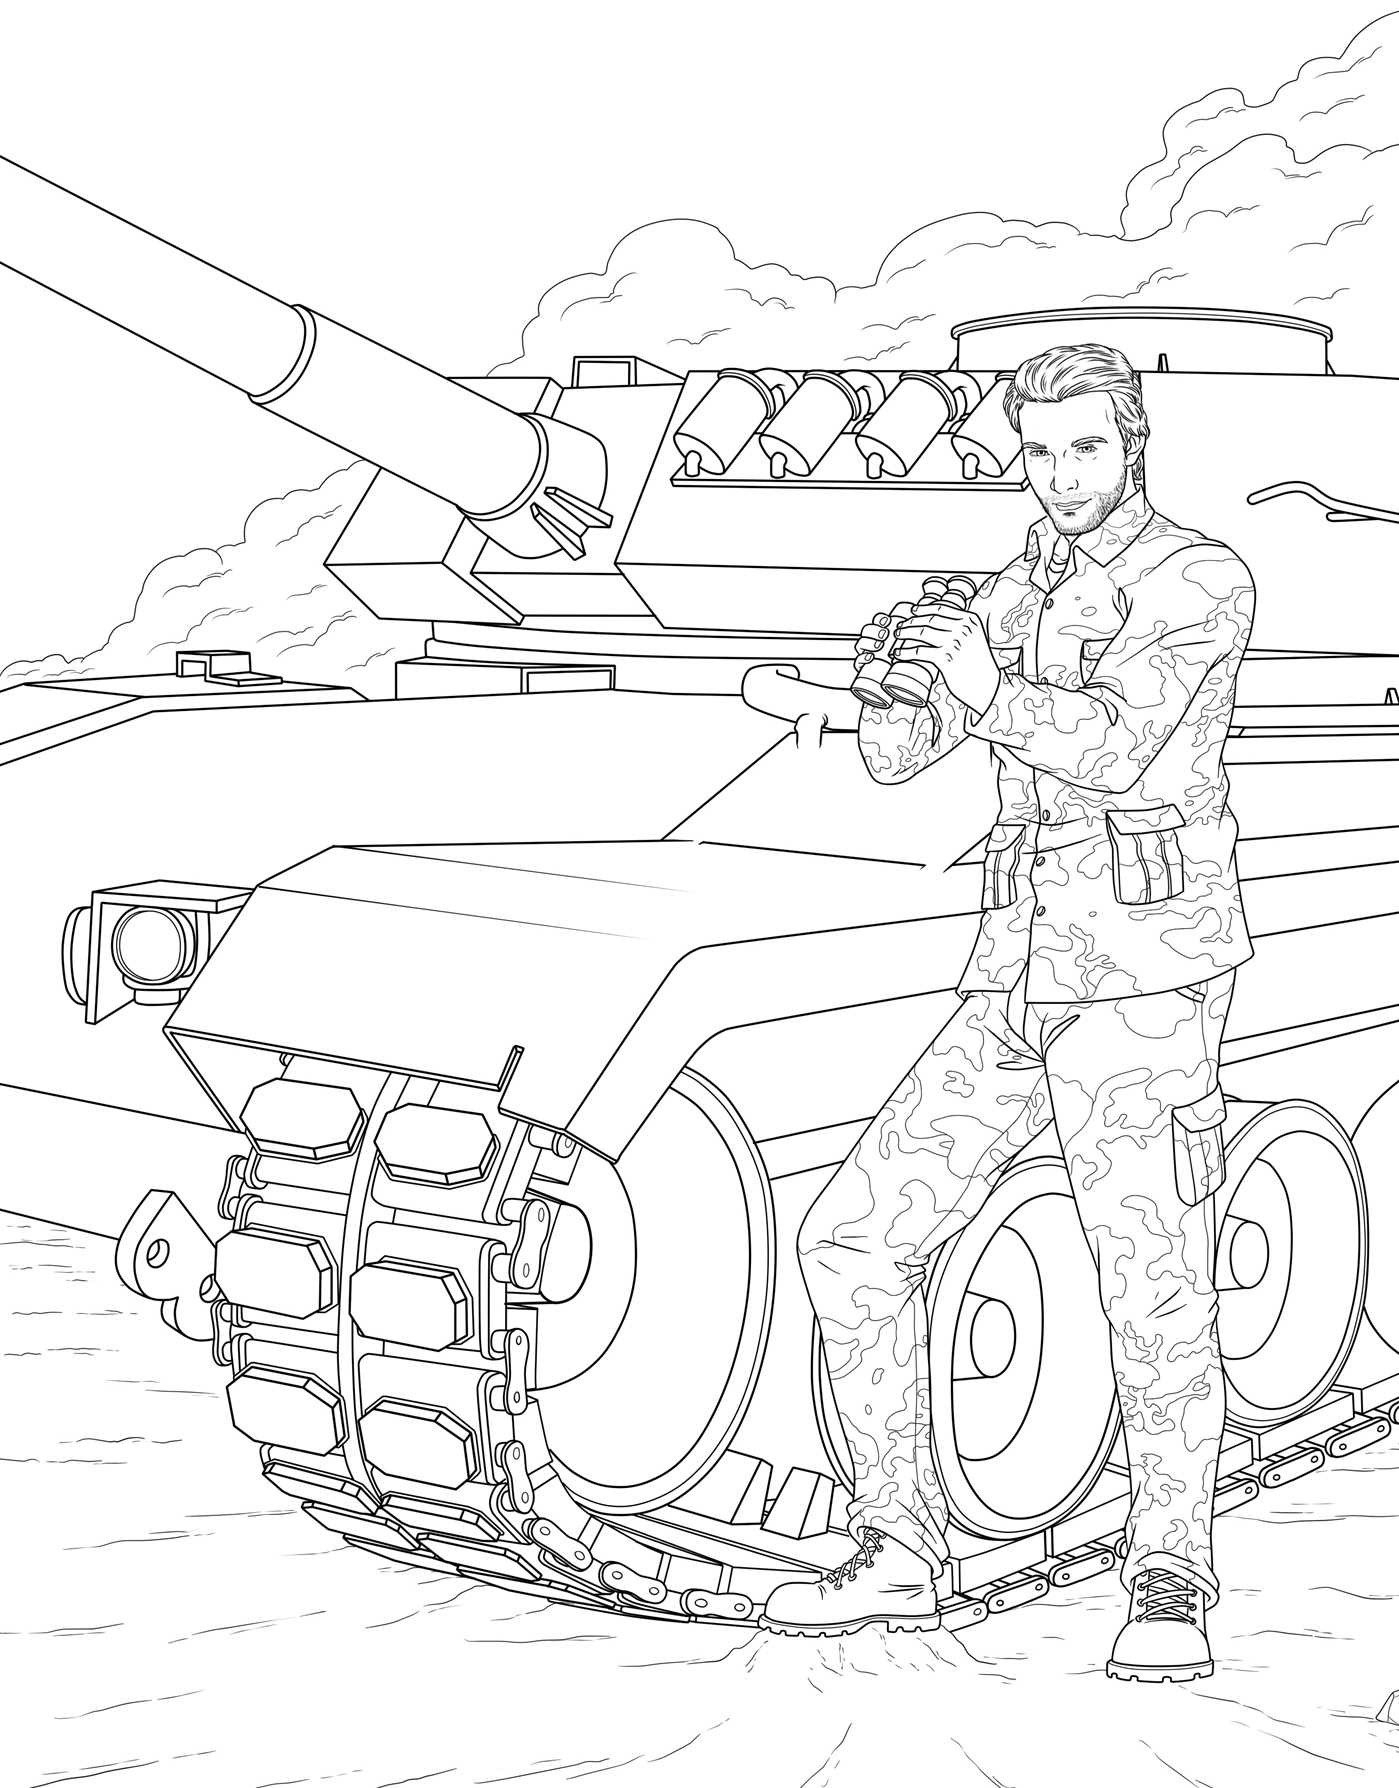 Publishers for adult coloring books -  Men In Uniform Adult Coloring Book 9781682611319 In02